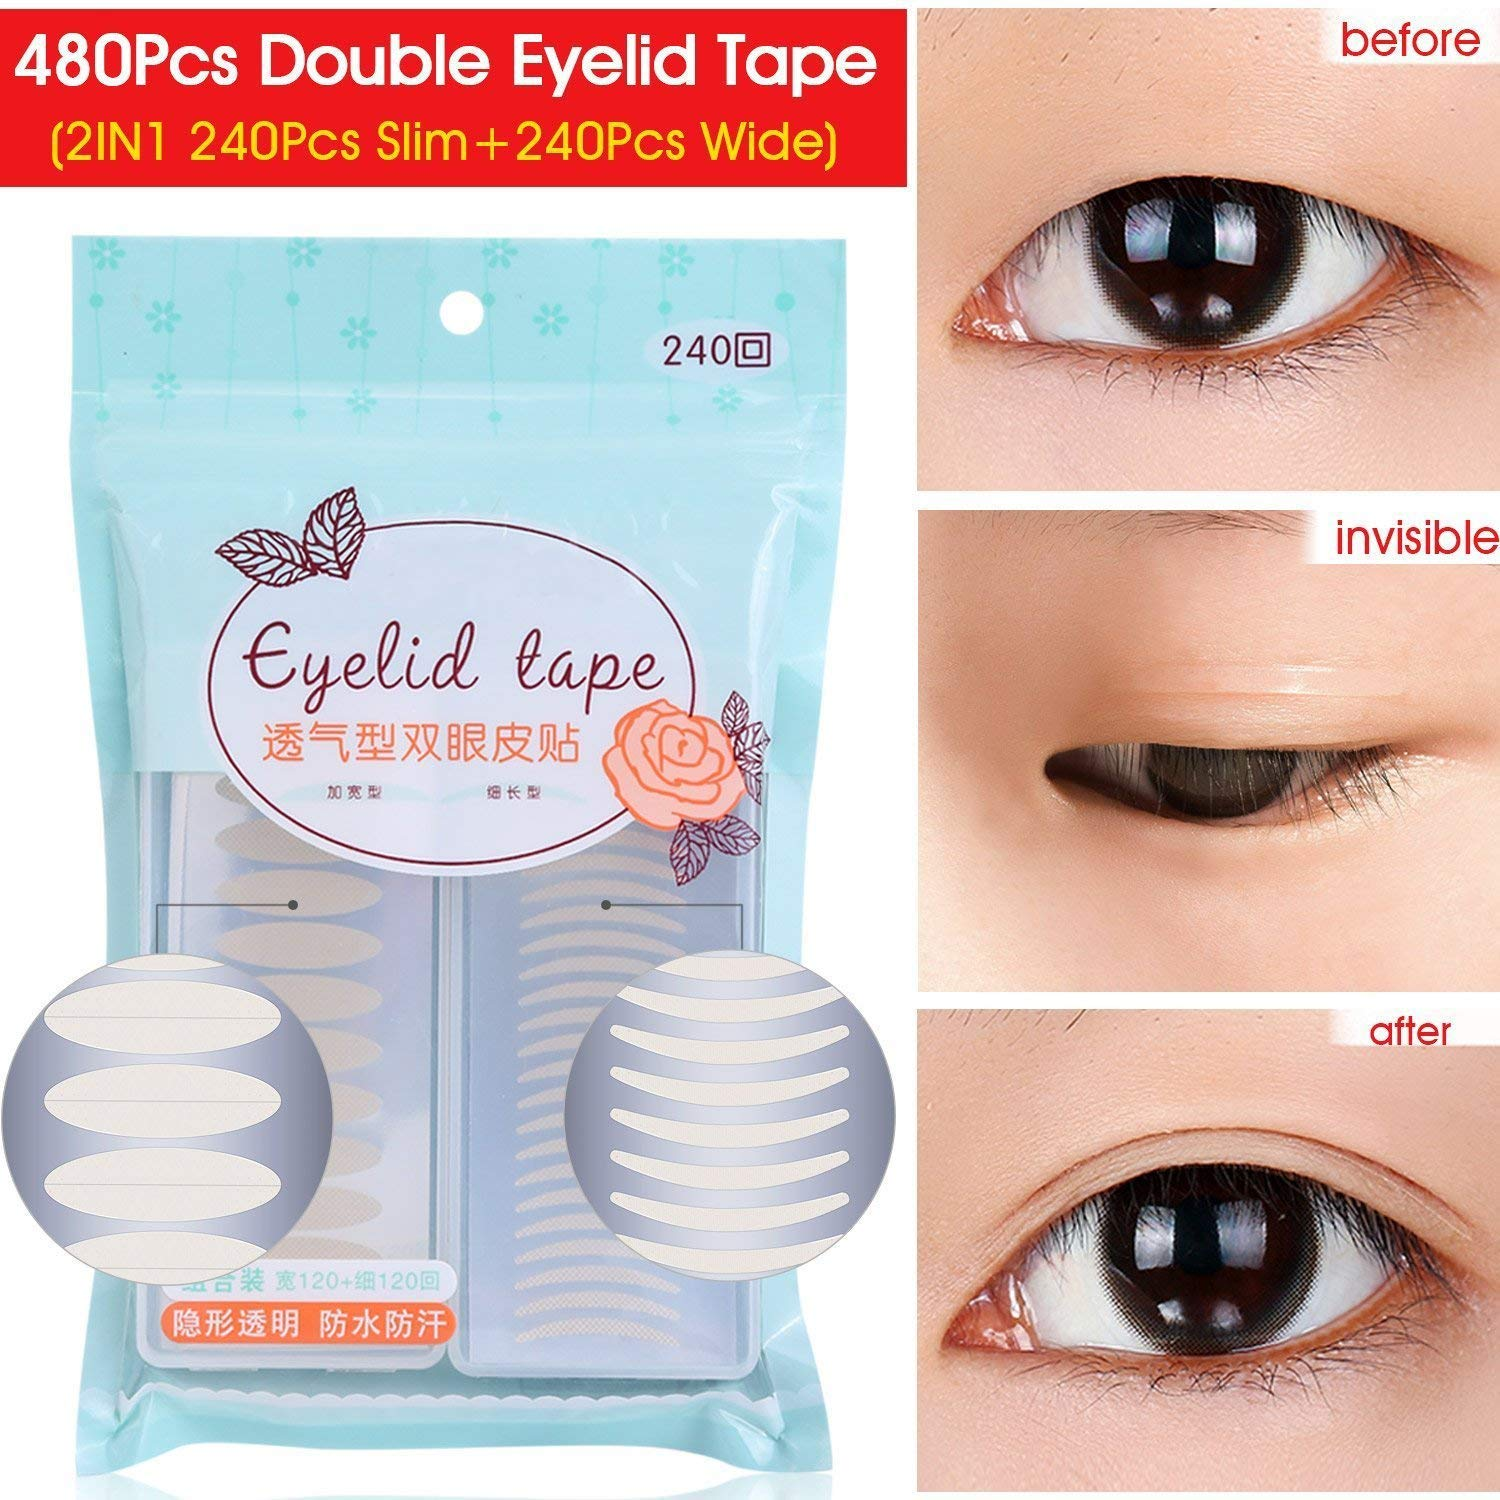 480PCS Invisible Single Side Sticky Fiber Double Eyelid Tapes Stickers, Perfect for Hooded, Droopy, Uneven, Small Eyes, or Mono-eyelids, 240PCS Slim + 240PCS Wide (240 Pairs, Wide + Slim) Pormasbenzer